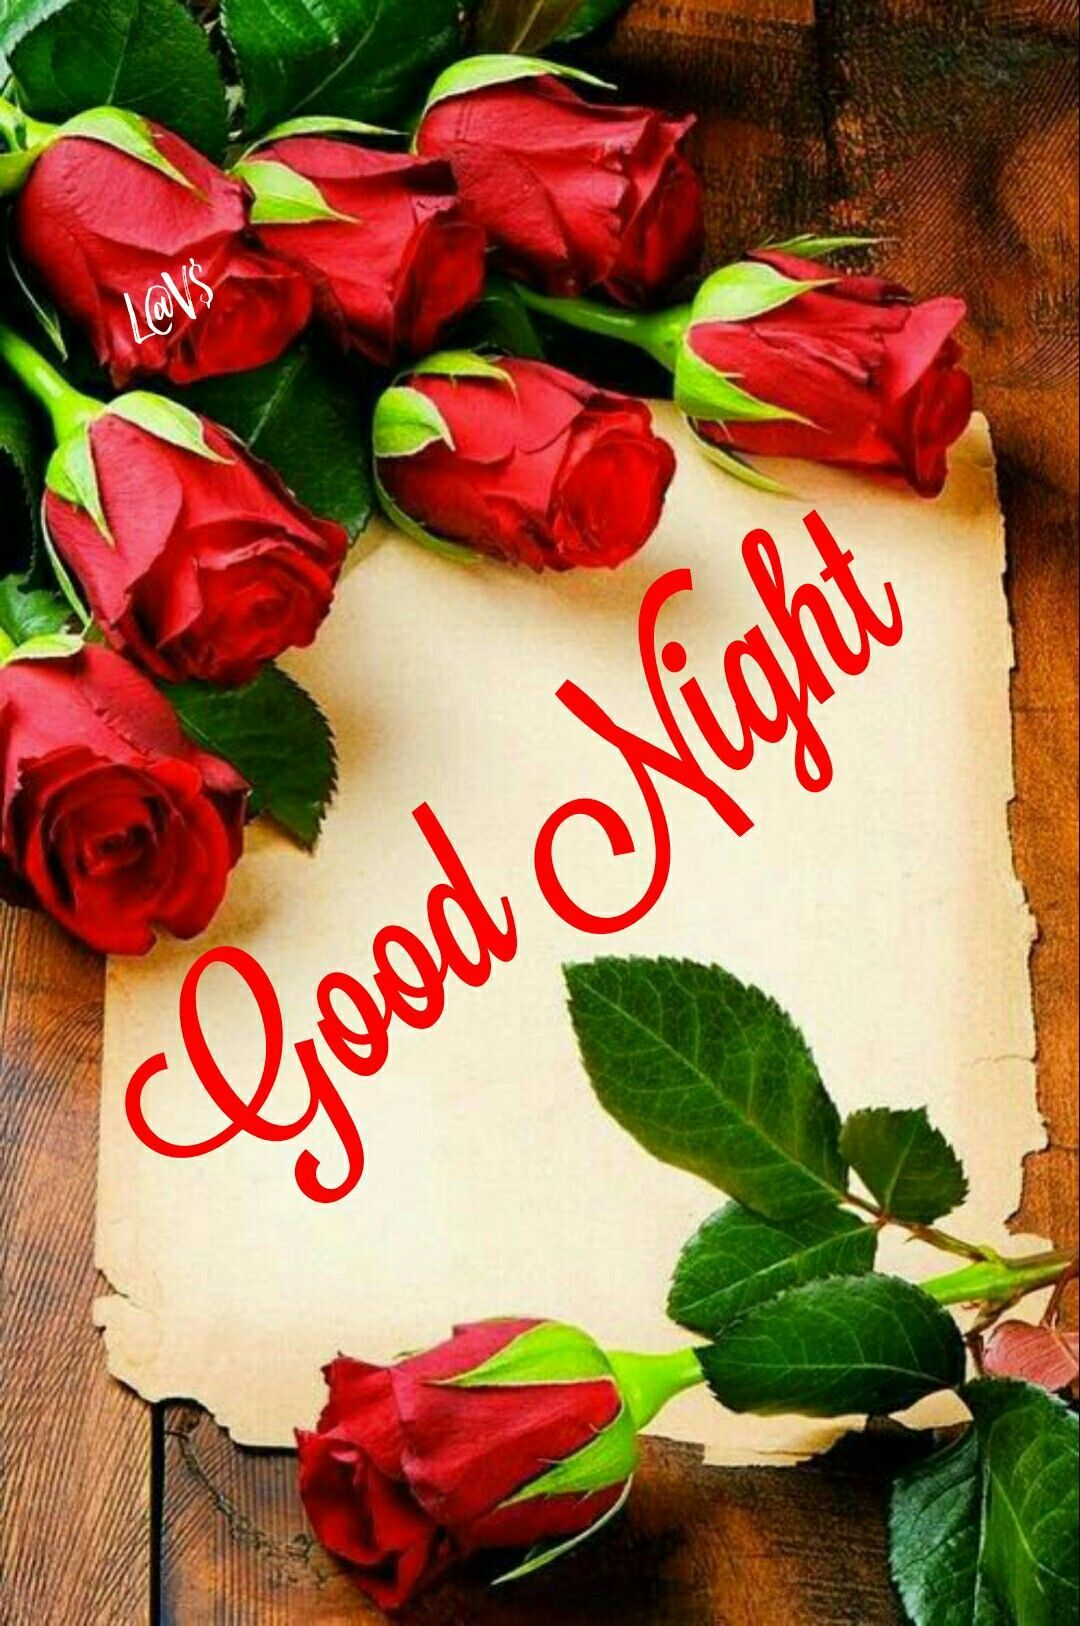 Good Night Image Wallpaper Photo Pictures For Him Her Good Night Flowers Good Night Image Good Night